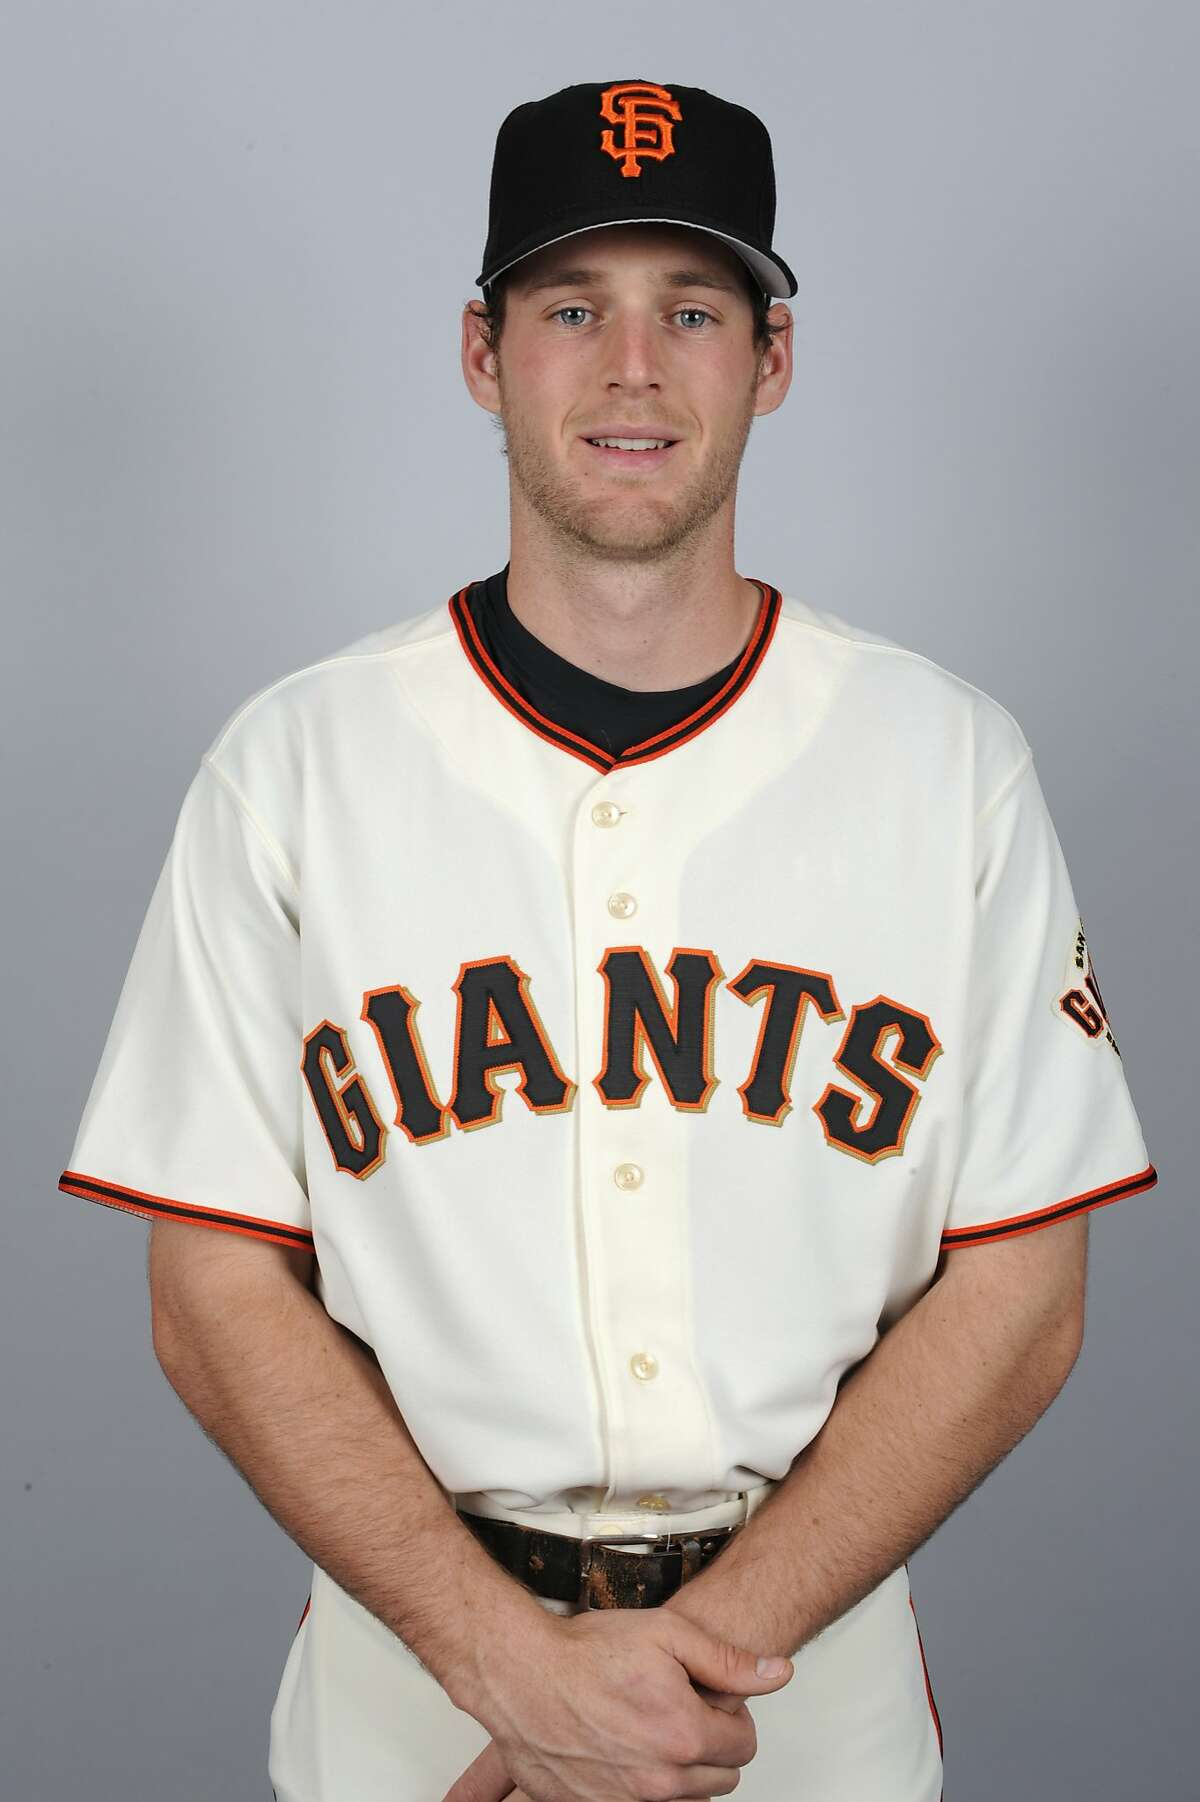 SCOTTSDALE, AZ - MARCH 1: Conor Gillaspie #50 of the San Francisco Giants poses during Photo Day on Thursday, March 1, 2012 at Scottsdale Stadium in Scottsdale, Arizona. (Photo by Ron Vesely/MLB Photos via Getty Images) *** Local Caption *** Conor Gillaspie